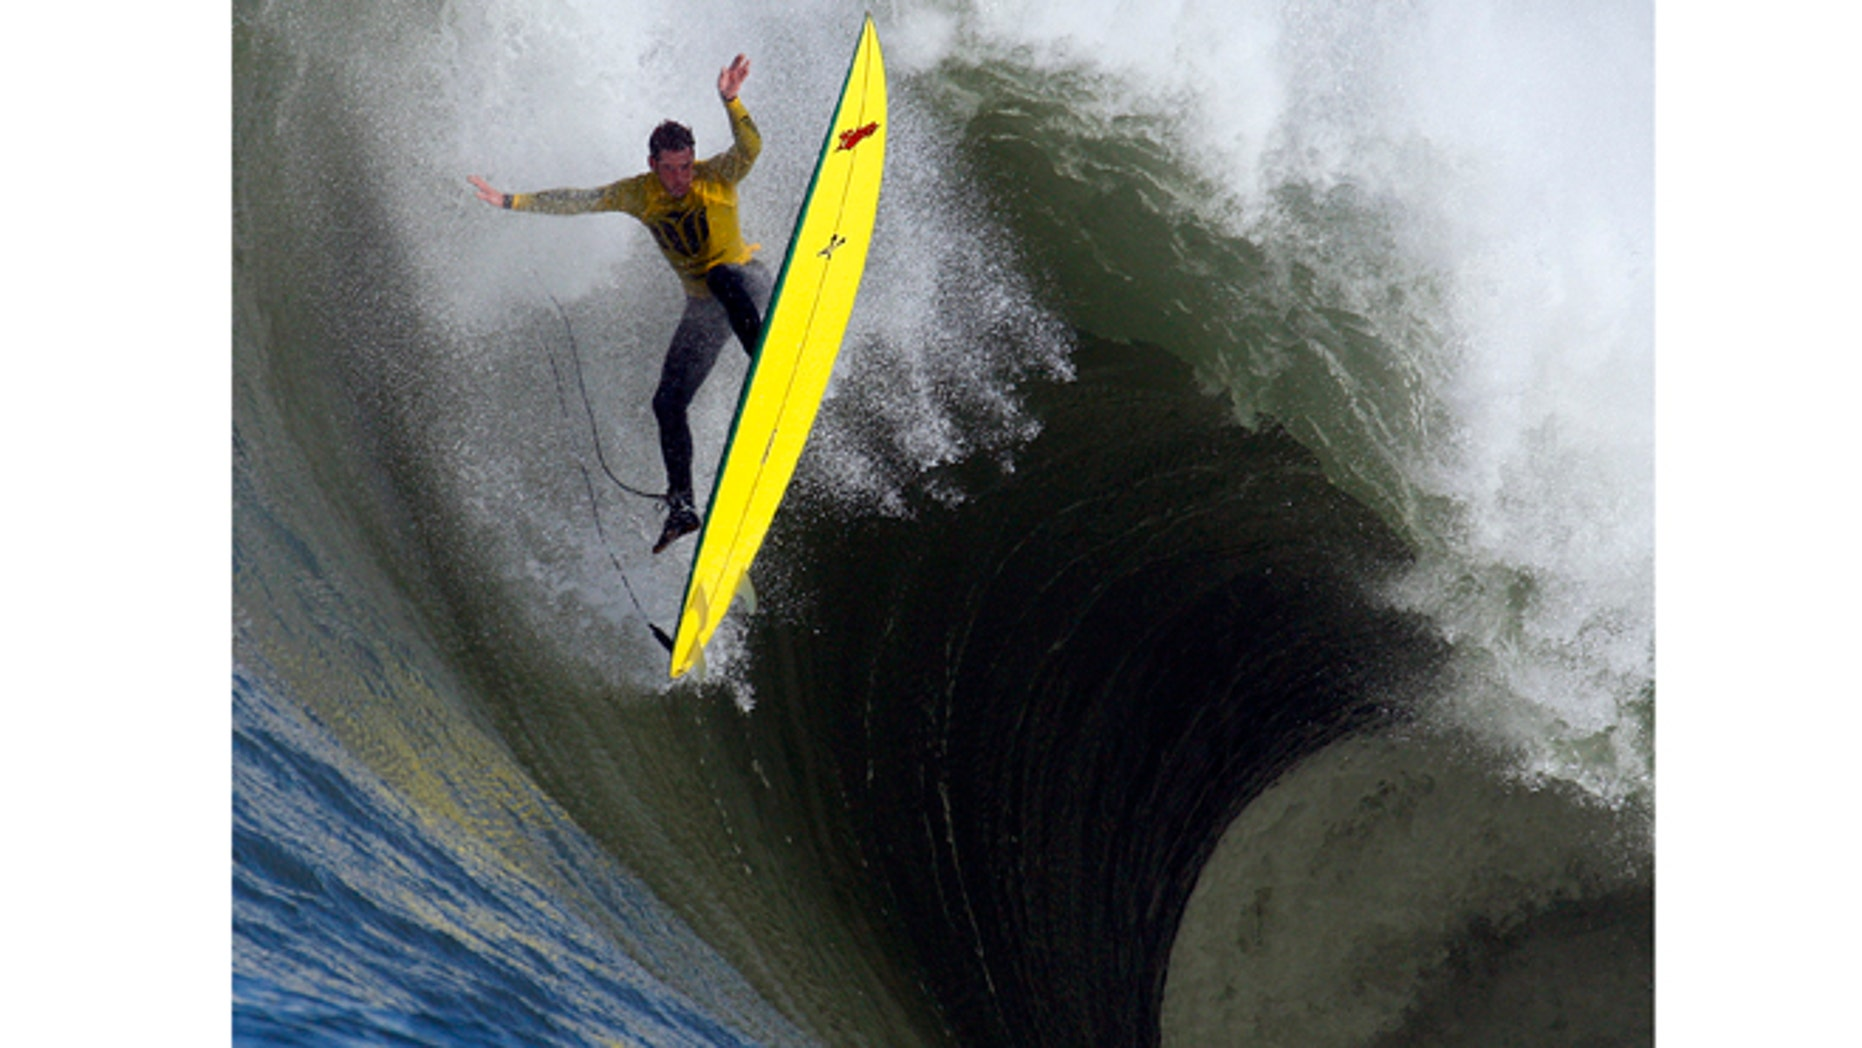 FILE - In this file photo from Saturday, Feb. 13, 2010, Ion Banner loses control on a giant wave during the Mavericks surfing contest in Half Moon Bay, Calif.